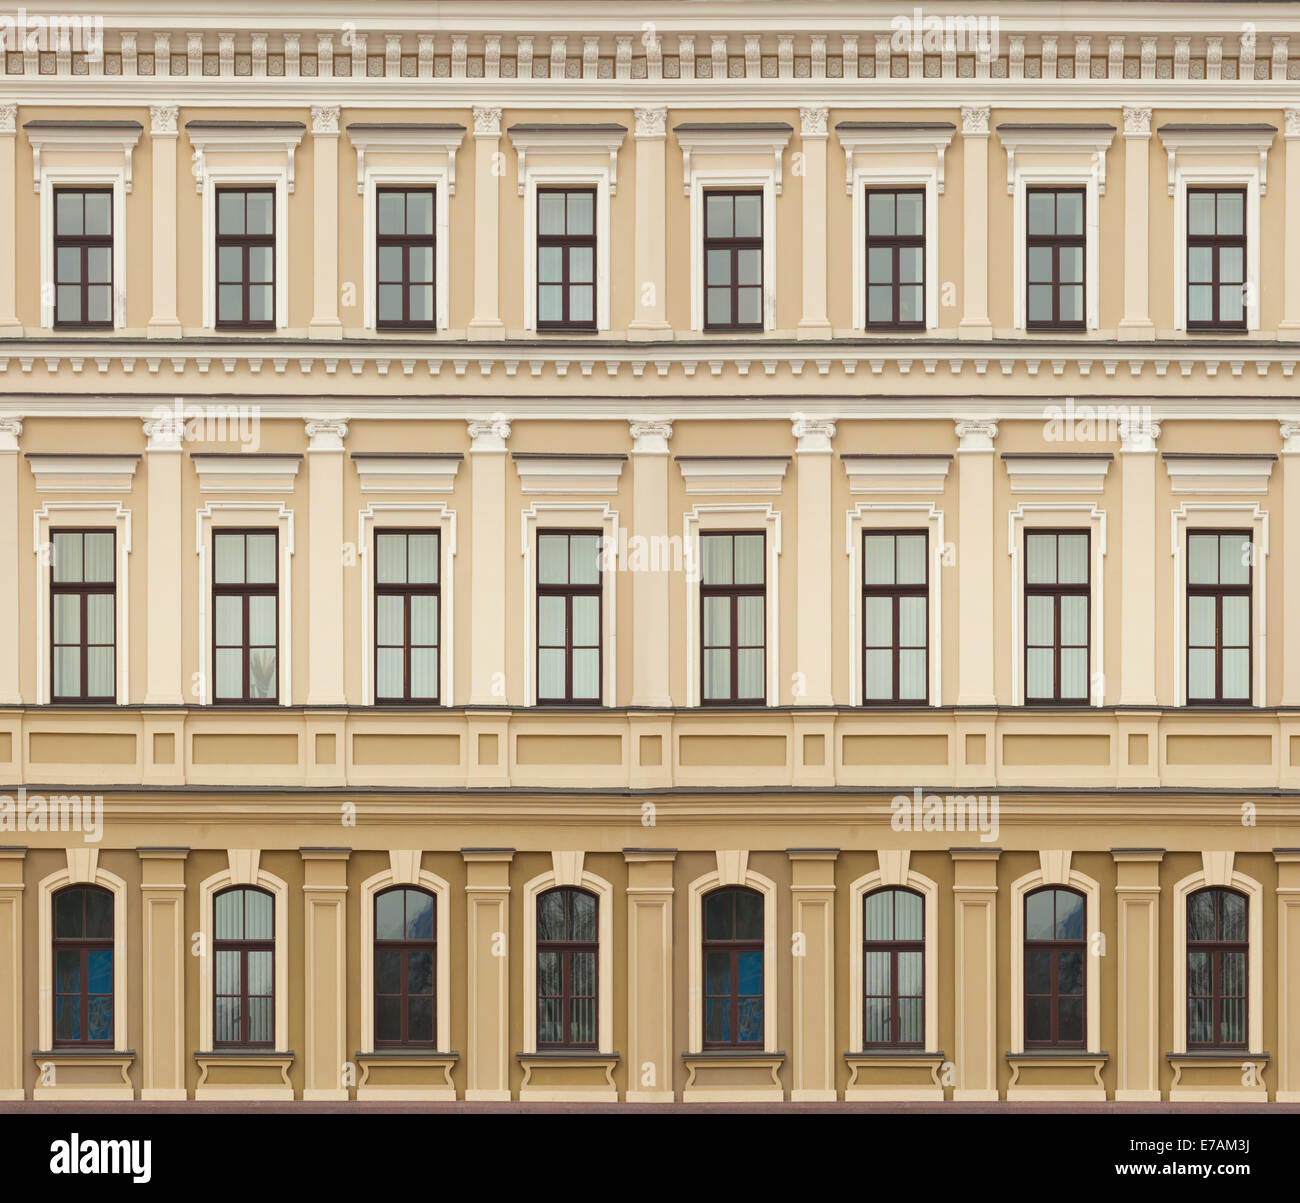 Neoclassic architecture wall with windows vintage building background - Stock Image